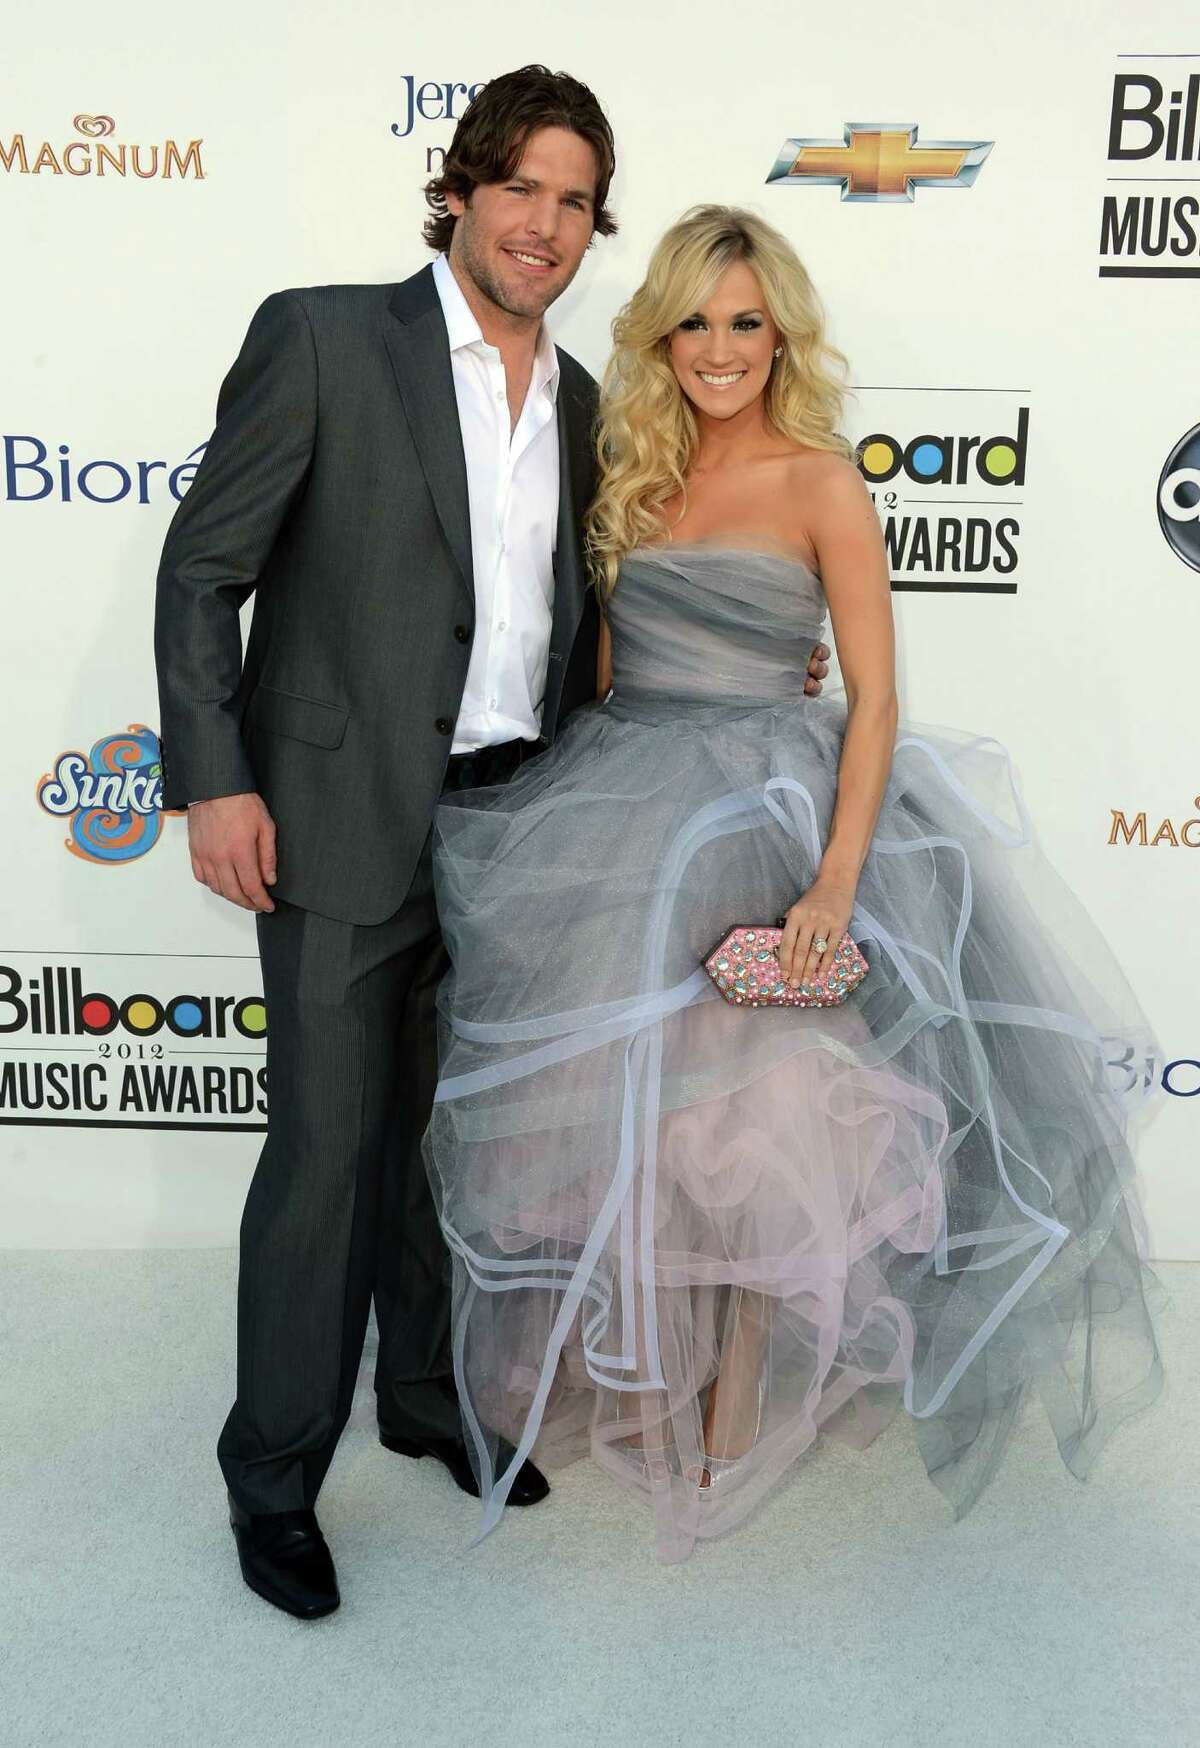 LAS VEGAS, NV - MAY 20: NHL hockey player Mike Fisher and Singer Carrie Underwood arrive at the 2012 Billboard Music Awards held at the MGM Grand Garden Arena on May 20, 2012 in Las Vegas, Nevada.